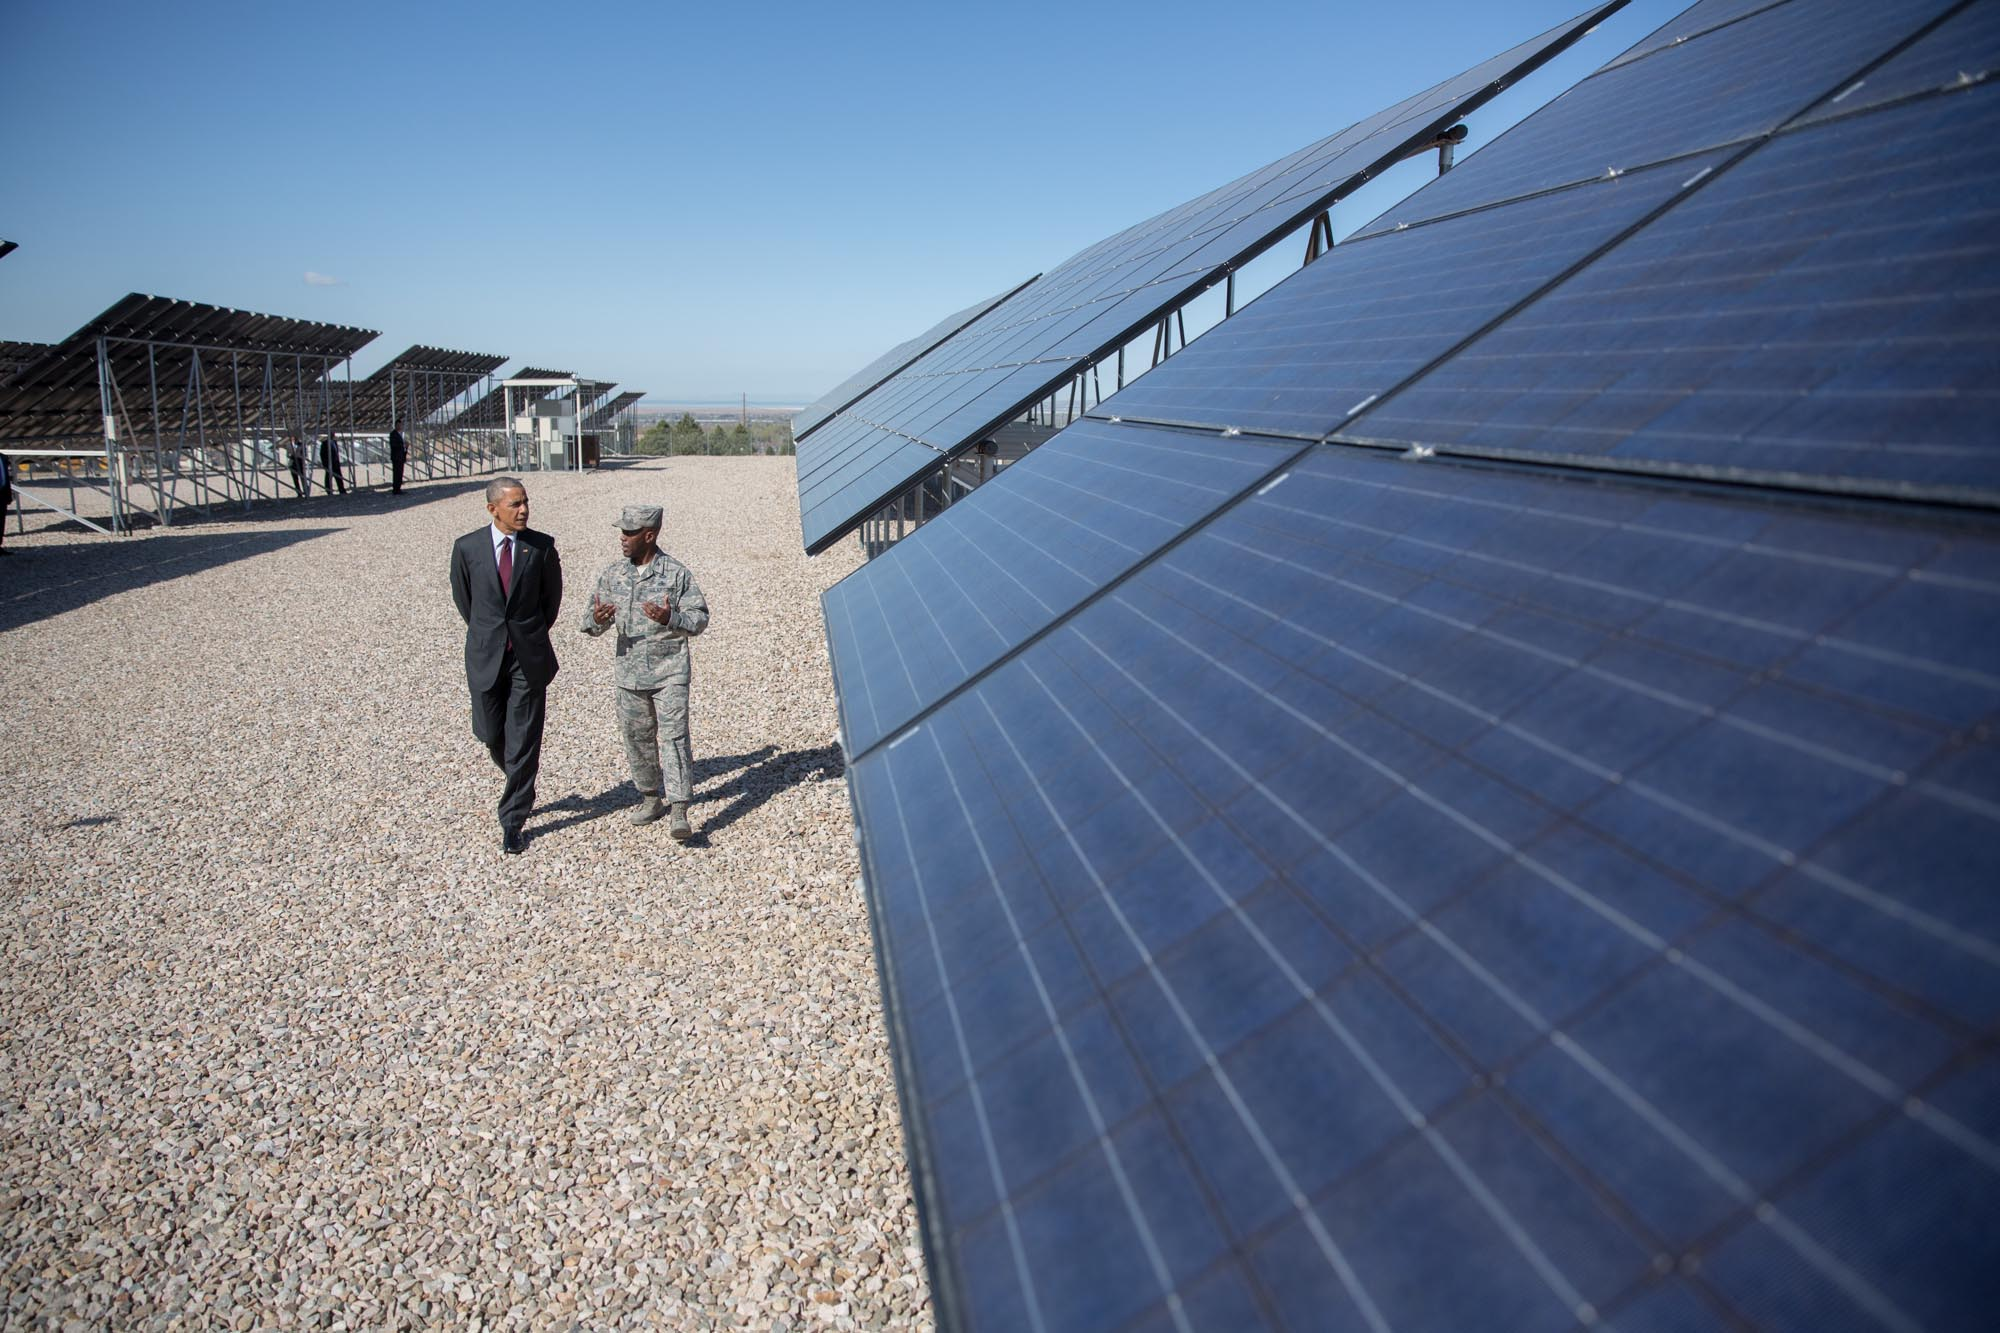 President Obama, with Col. Ronald E. Jolly,  Commander, 75th Air Base Wing, tours the solar array at Hill Air Force Base in Layton, Utah